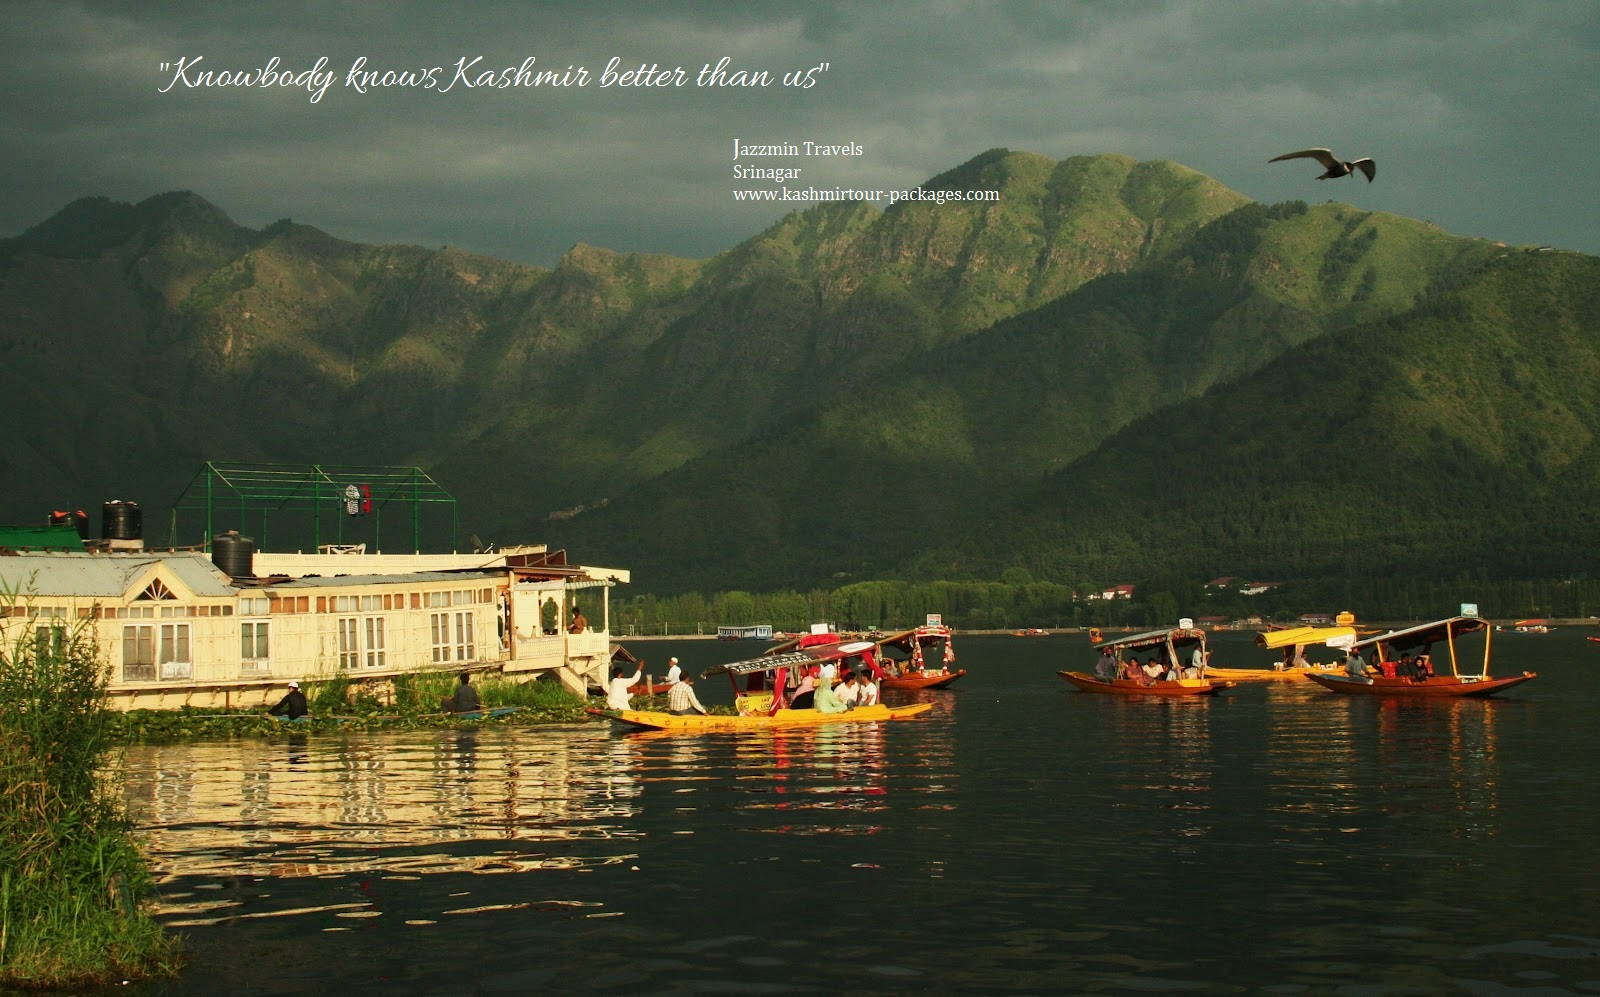 kashmir tour packages from jazzmin travels 60